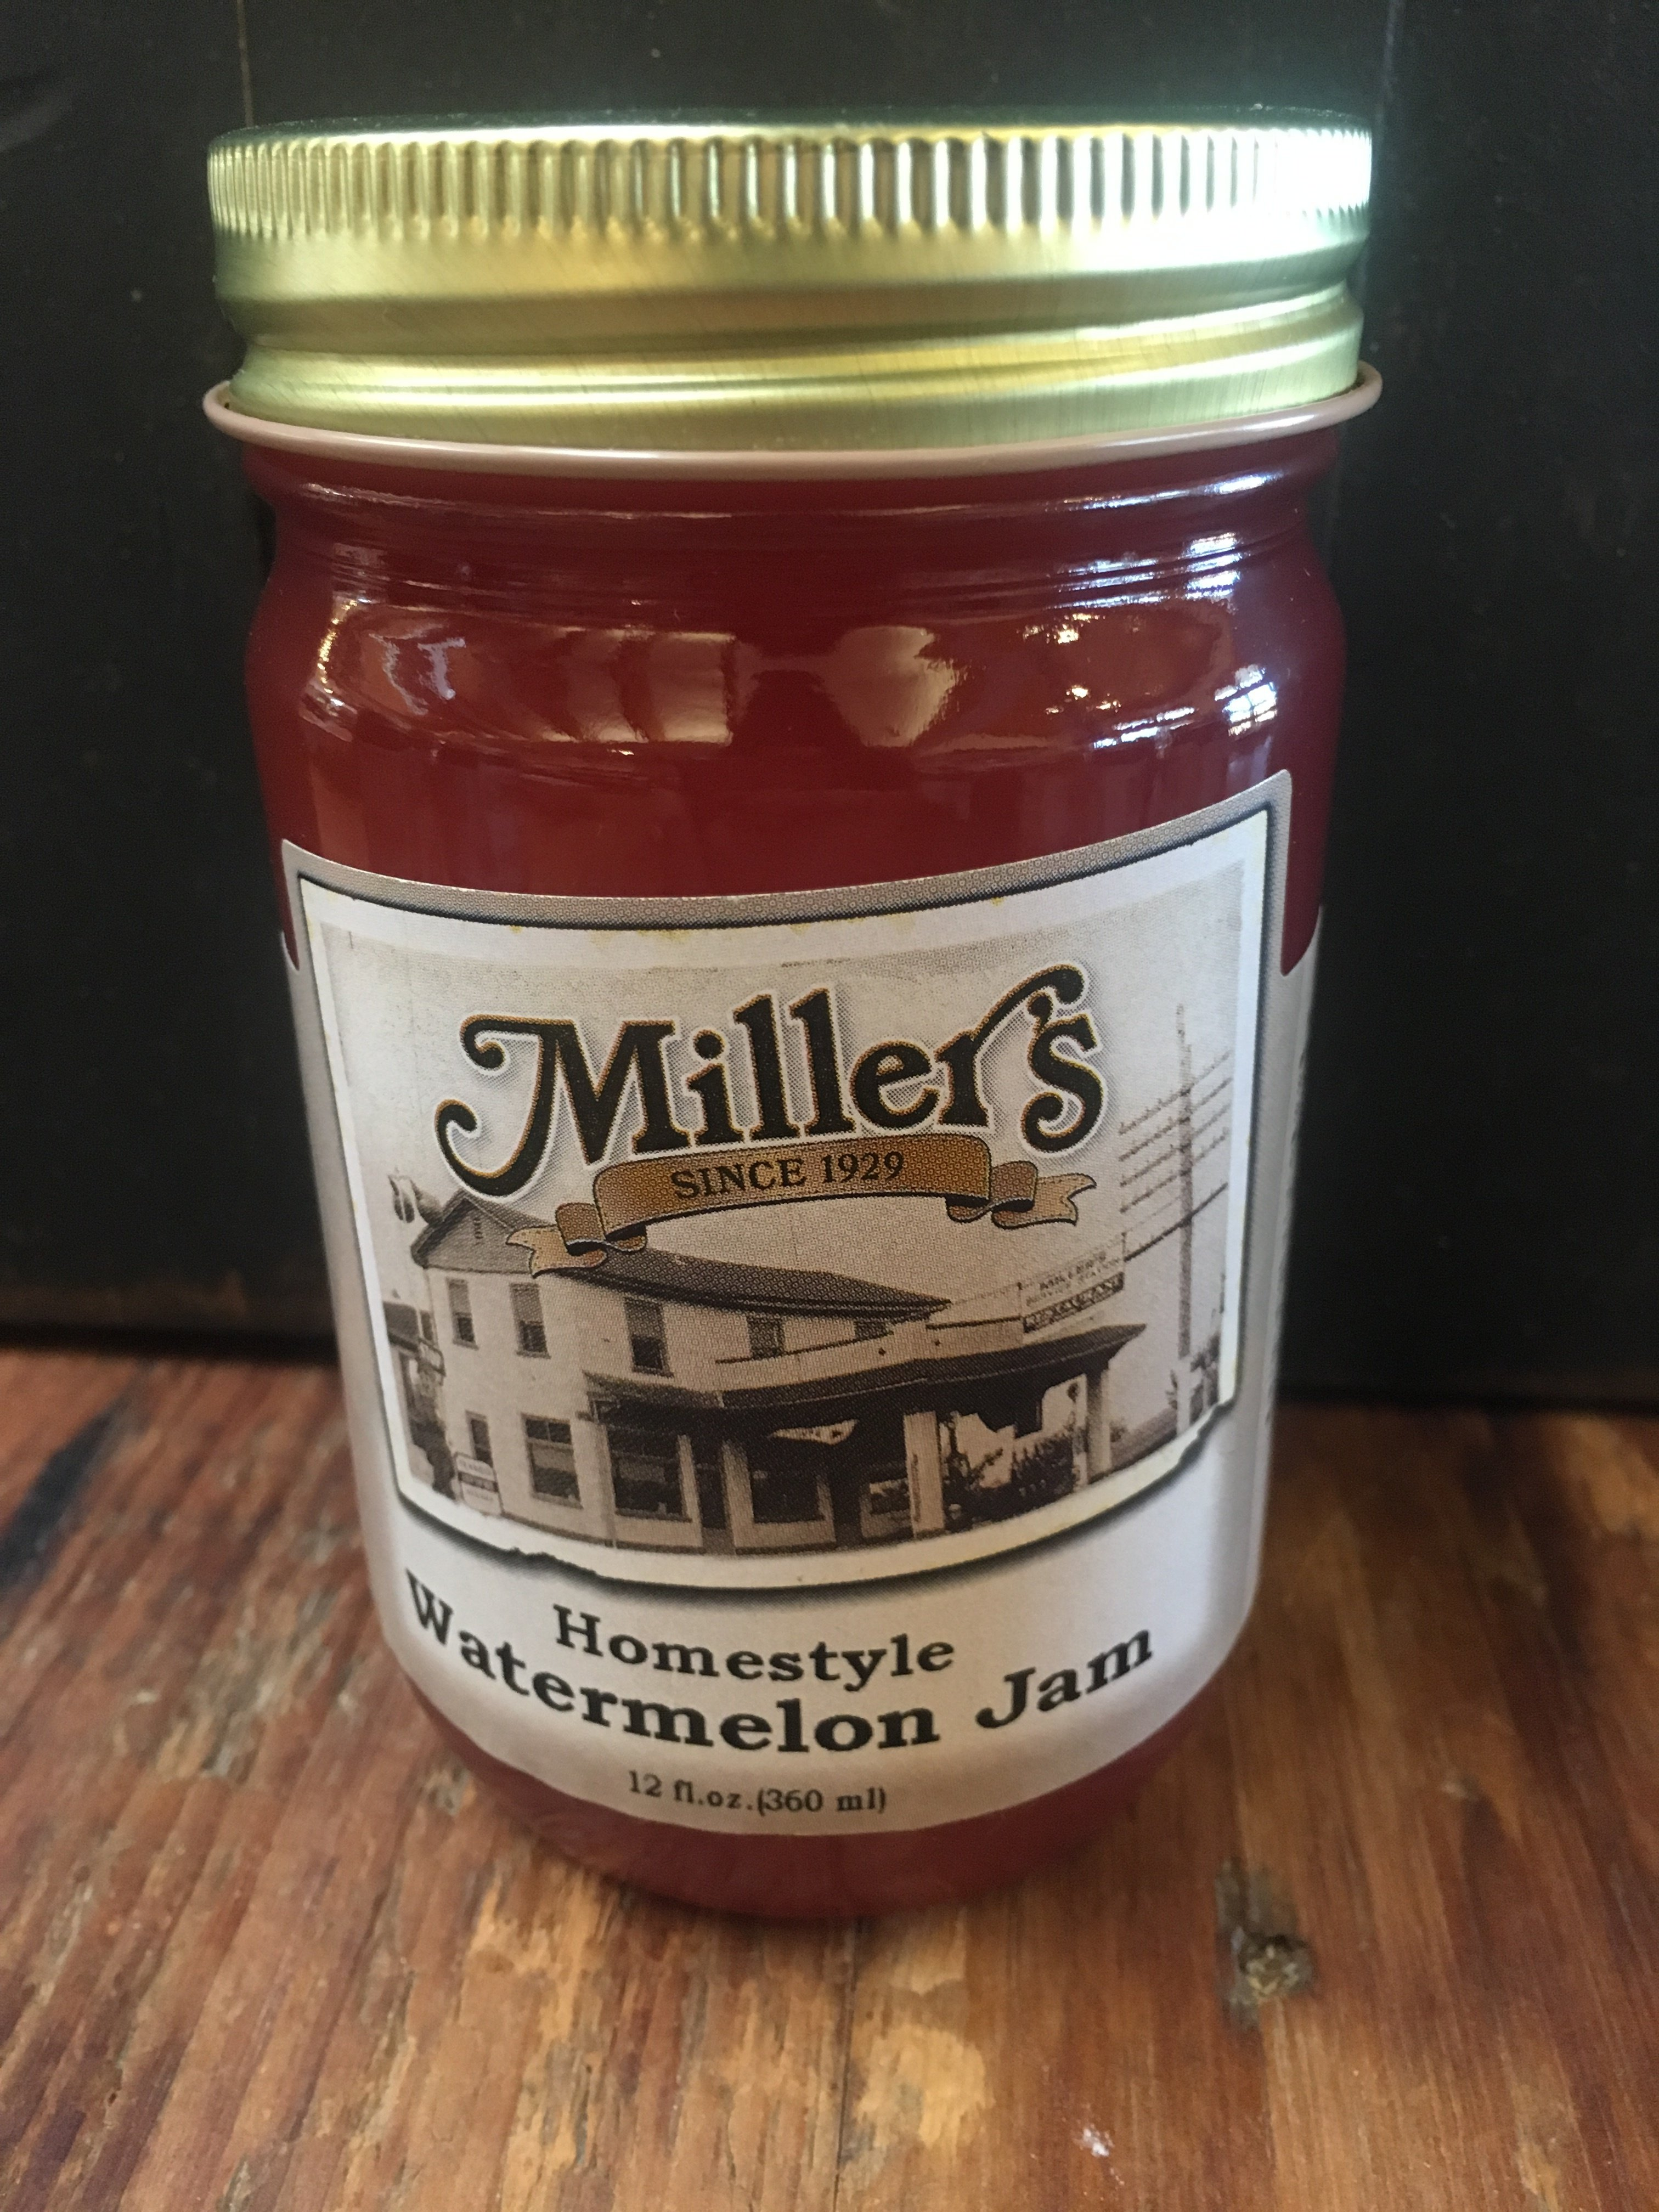 Watermelon Jam 12oz 00028